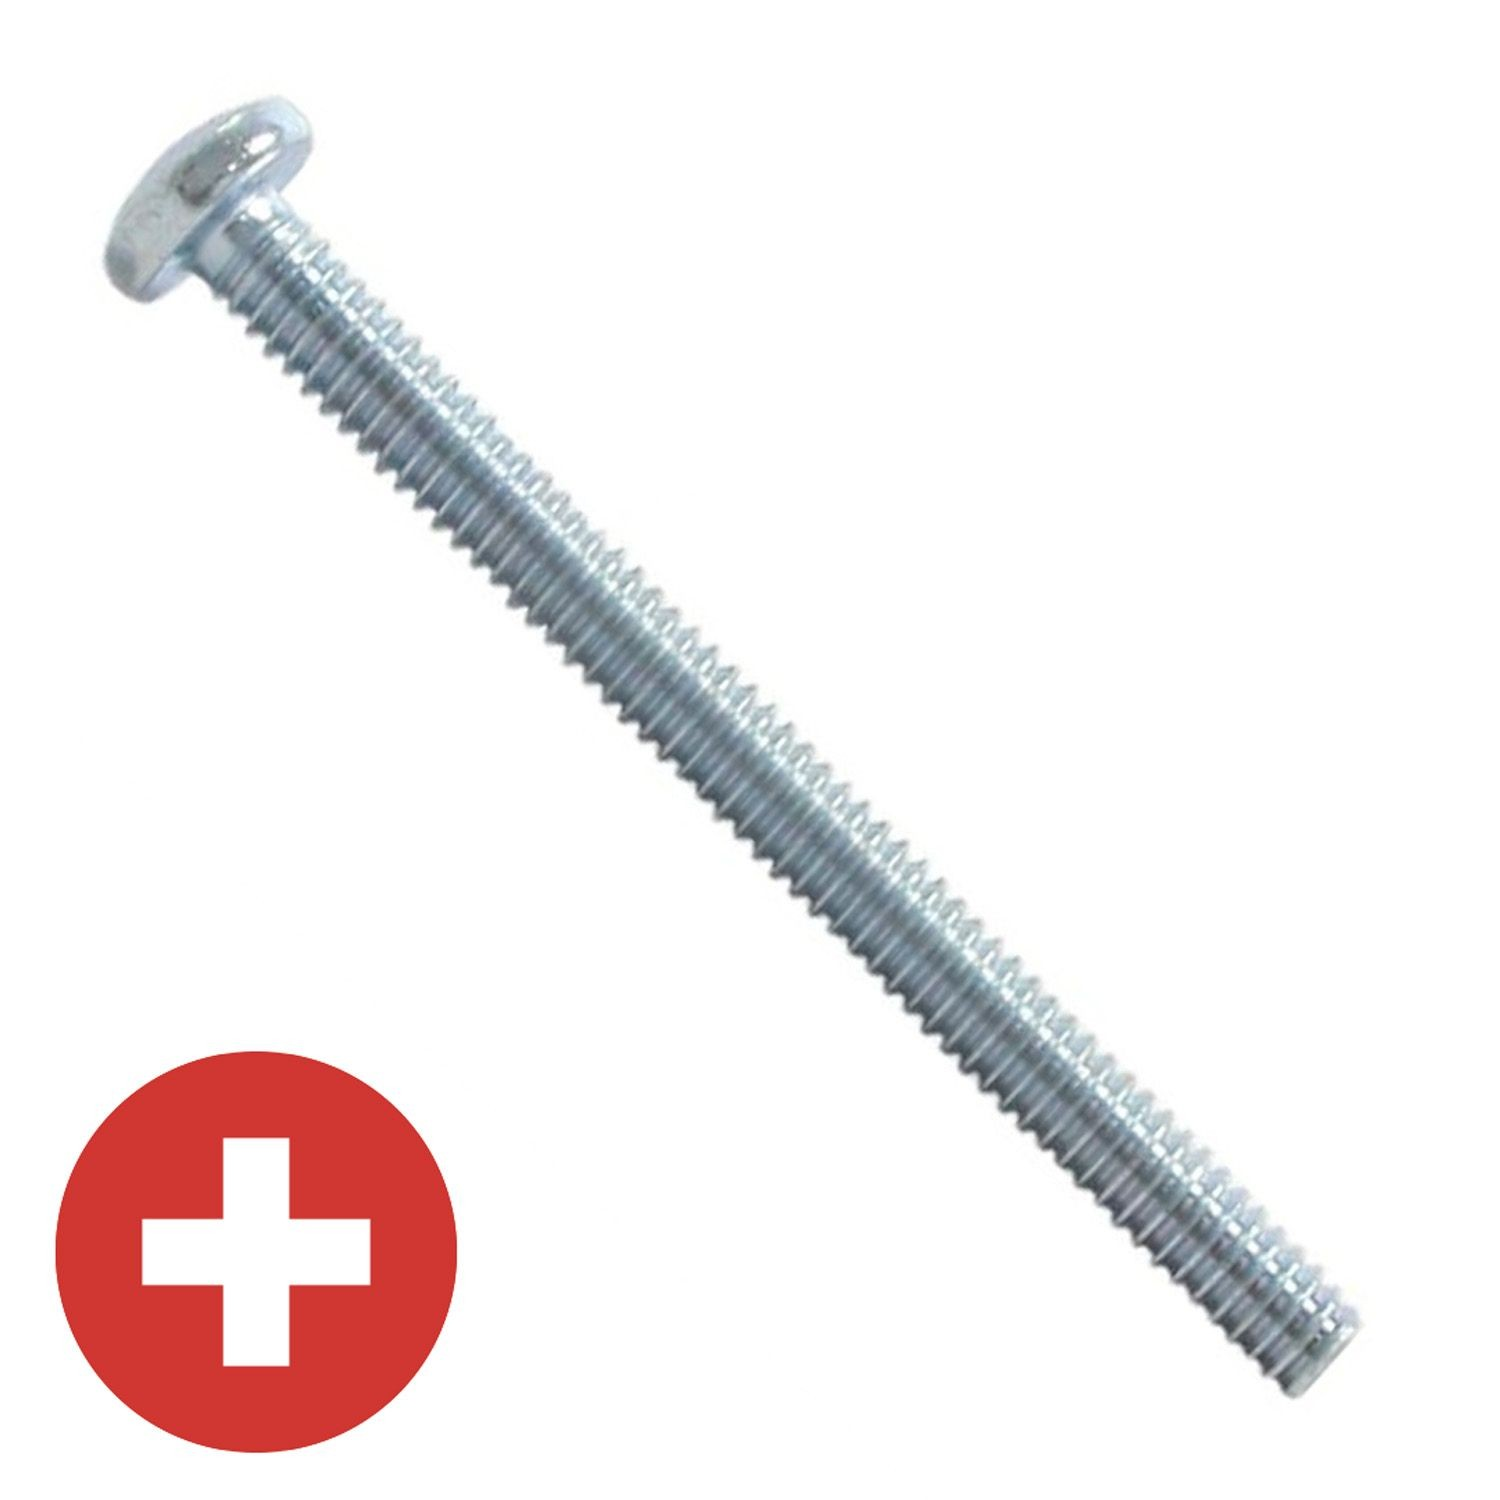 "#10-24 x 2"" Zinc Plated Phillips Pan Head Machine Screw"